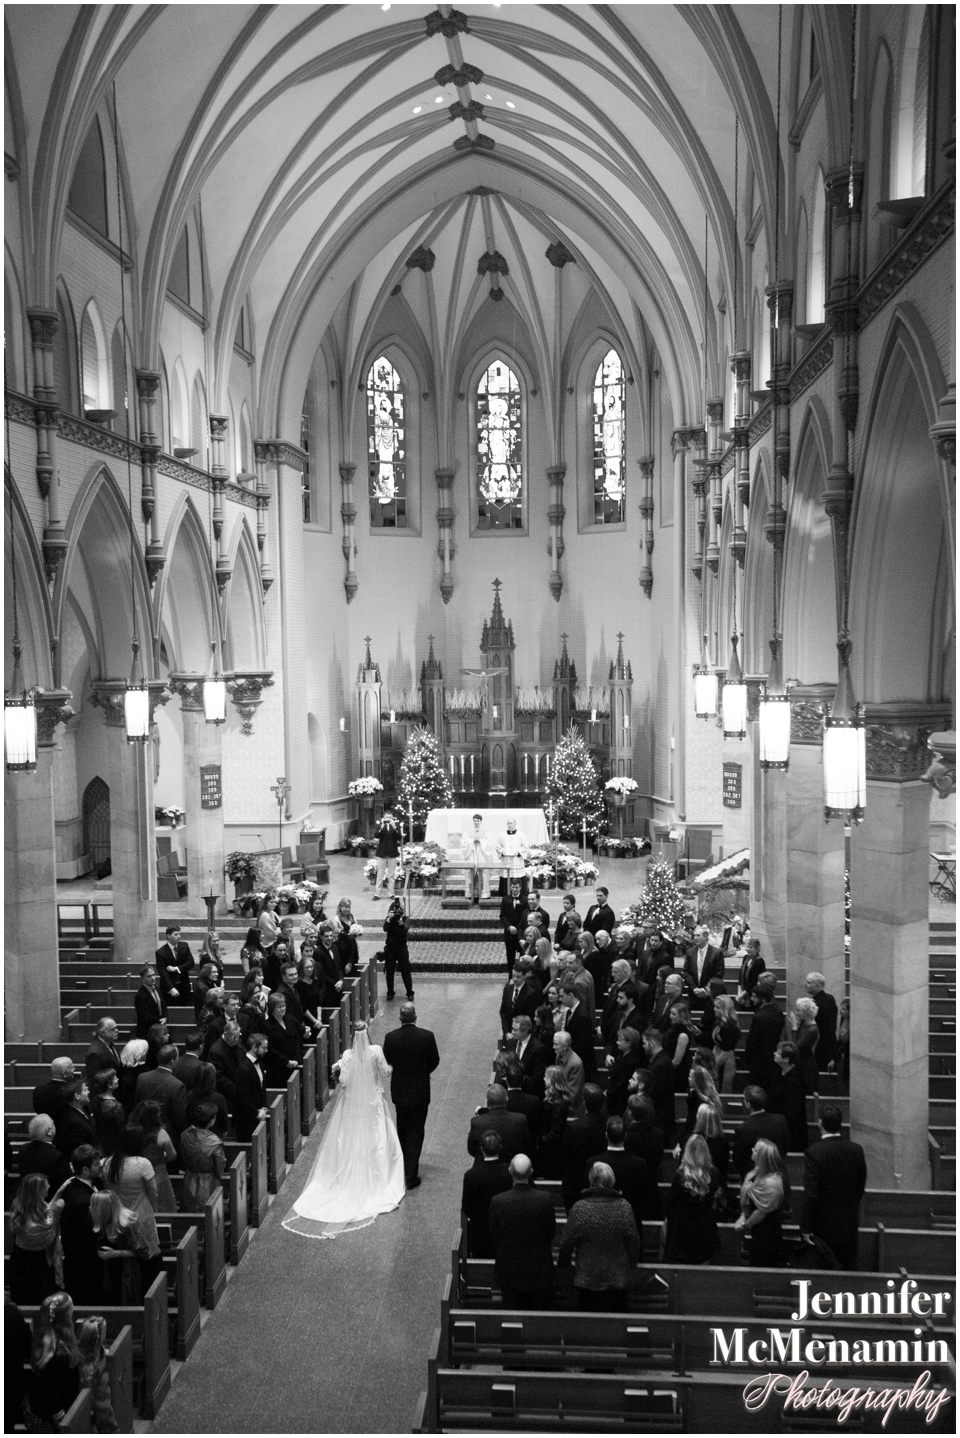 0039_RyanClemmens_01148bw-0301_JenniferMcMenaminPhotography_Immaculate-Conception-Church_The-Cloisters_Baltimore-wedding-photography_Baltimore-wedding-photographer